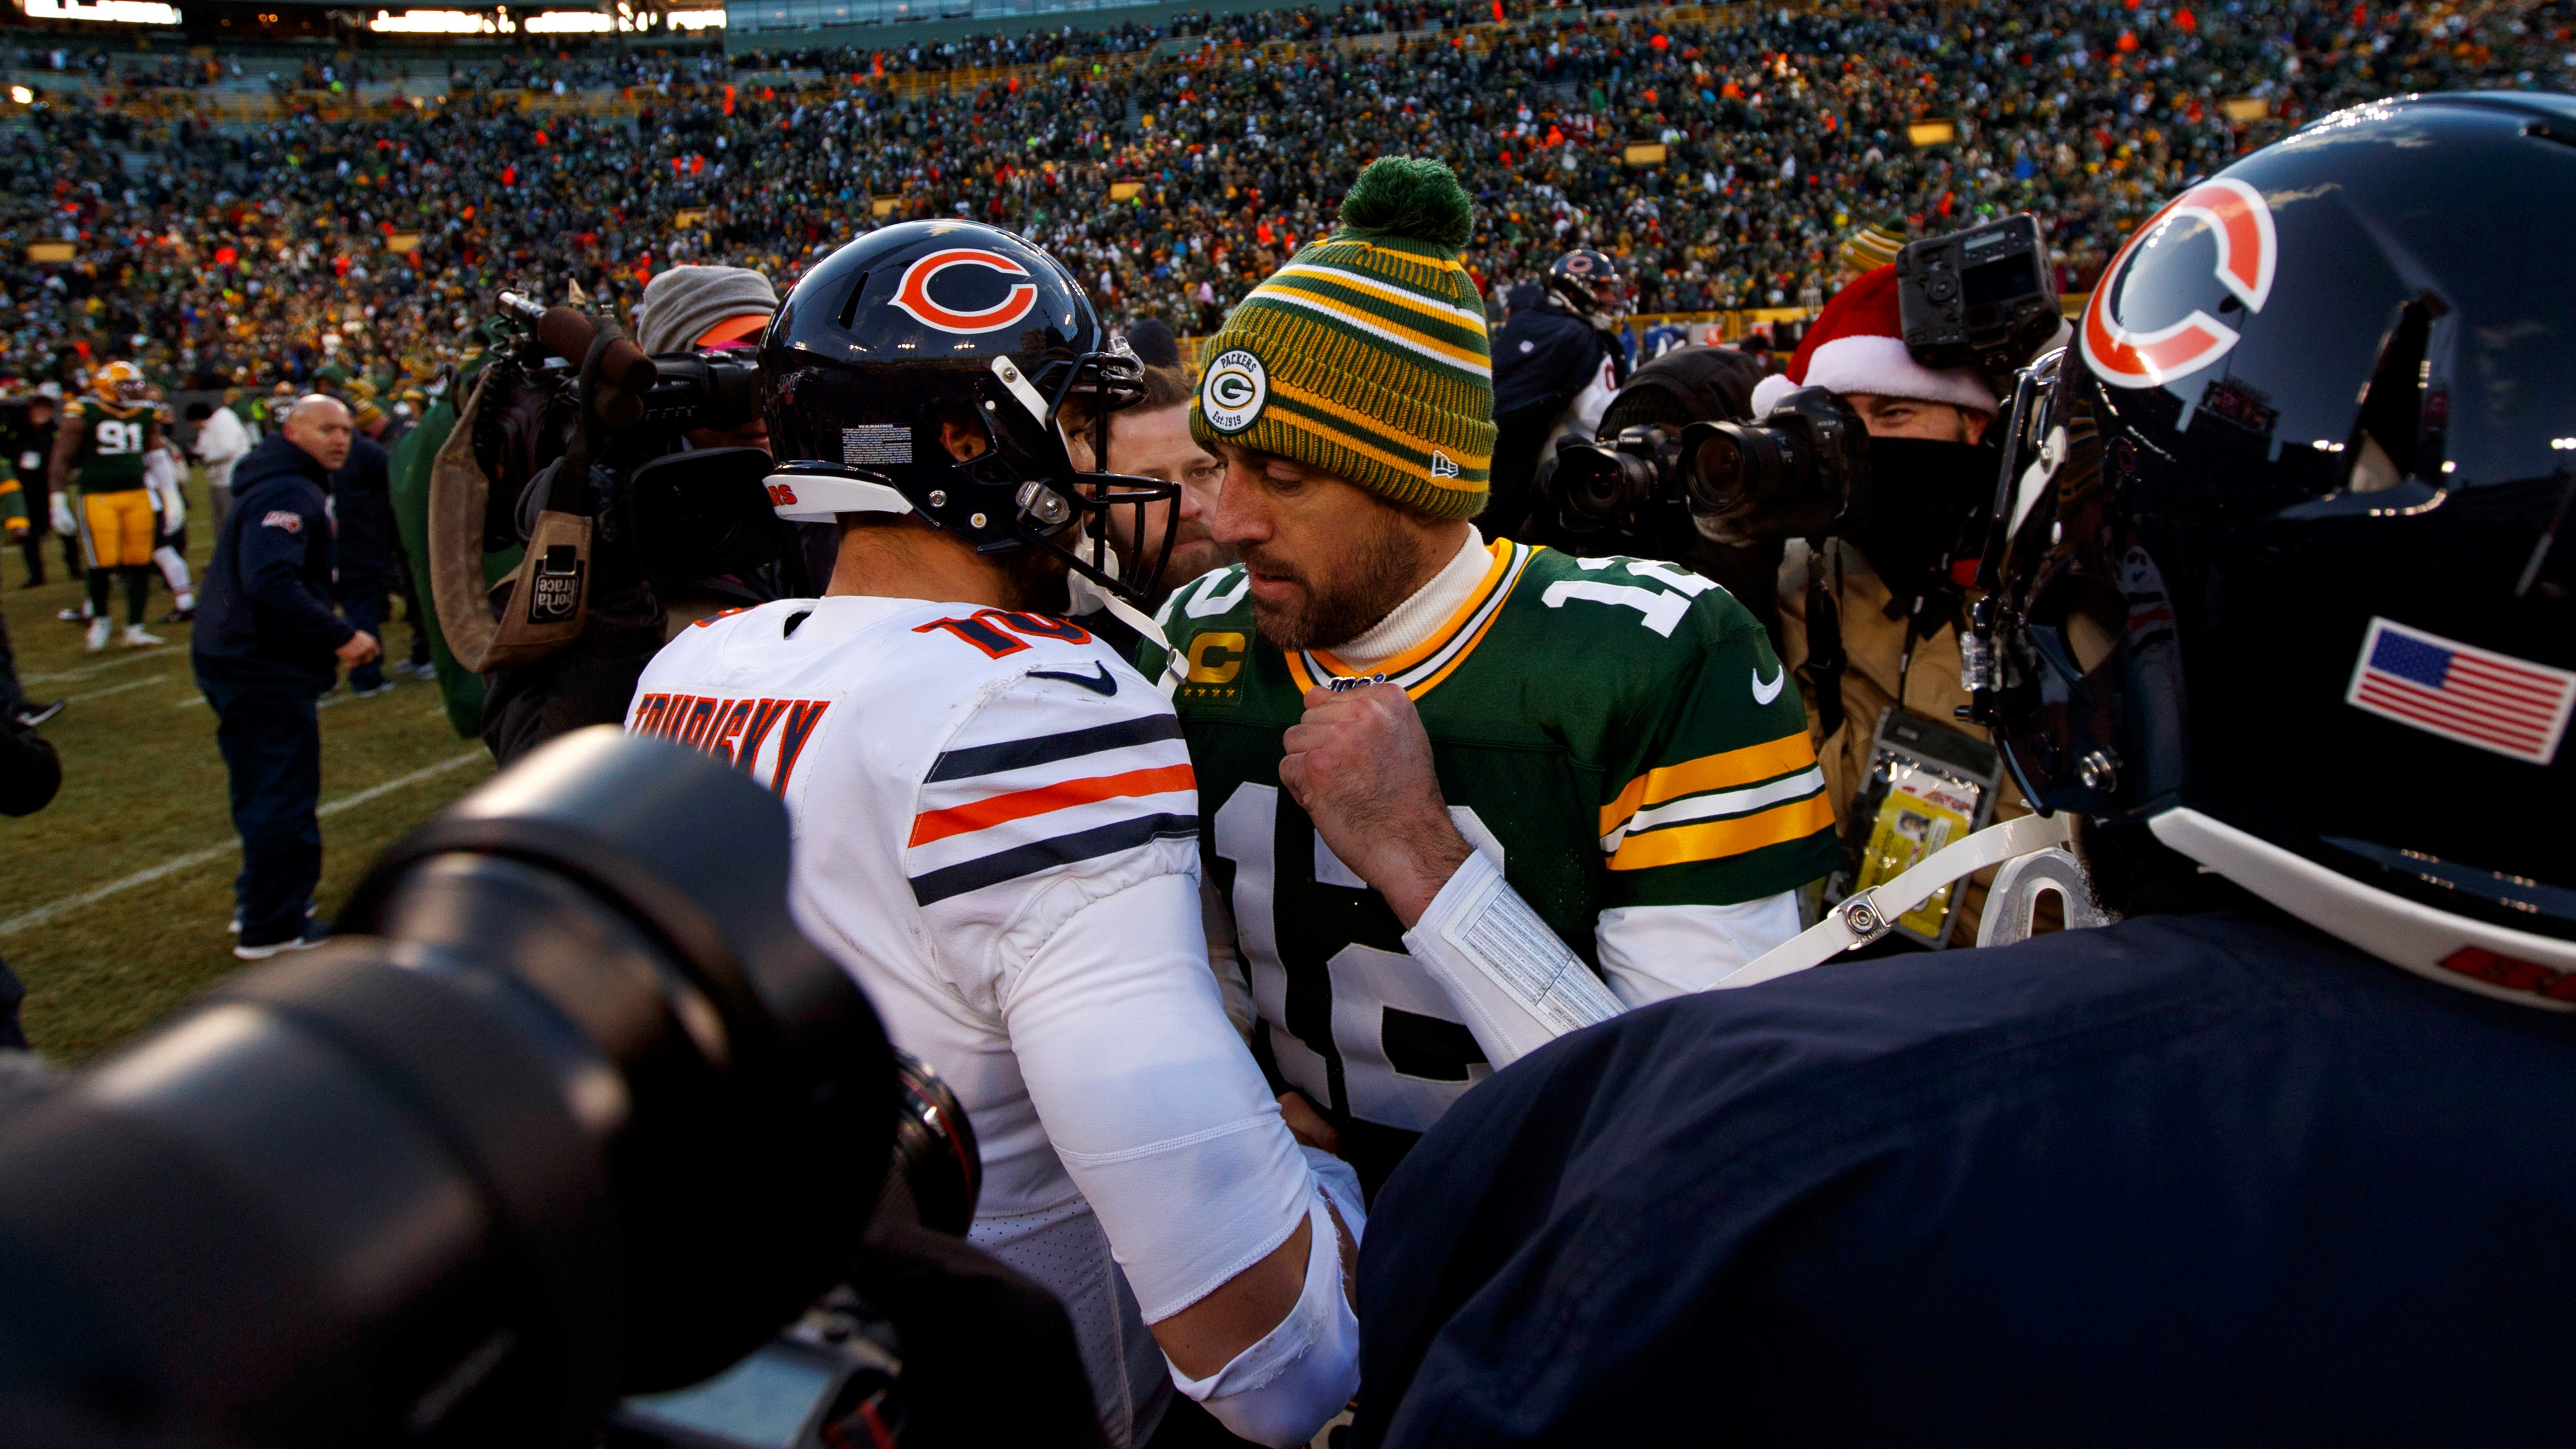 Packers Clinch But Looking for More